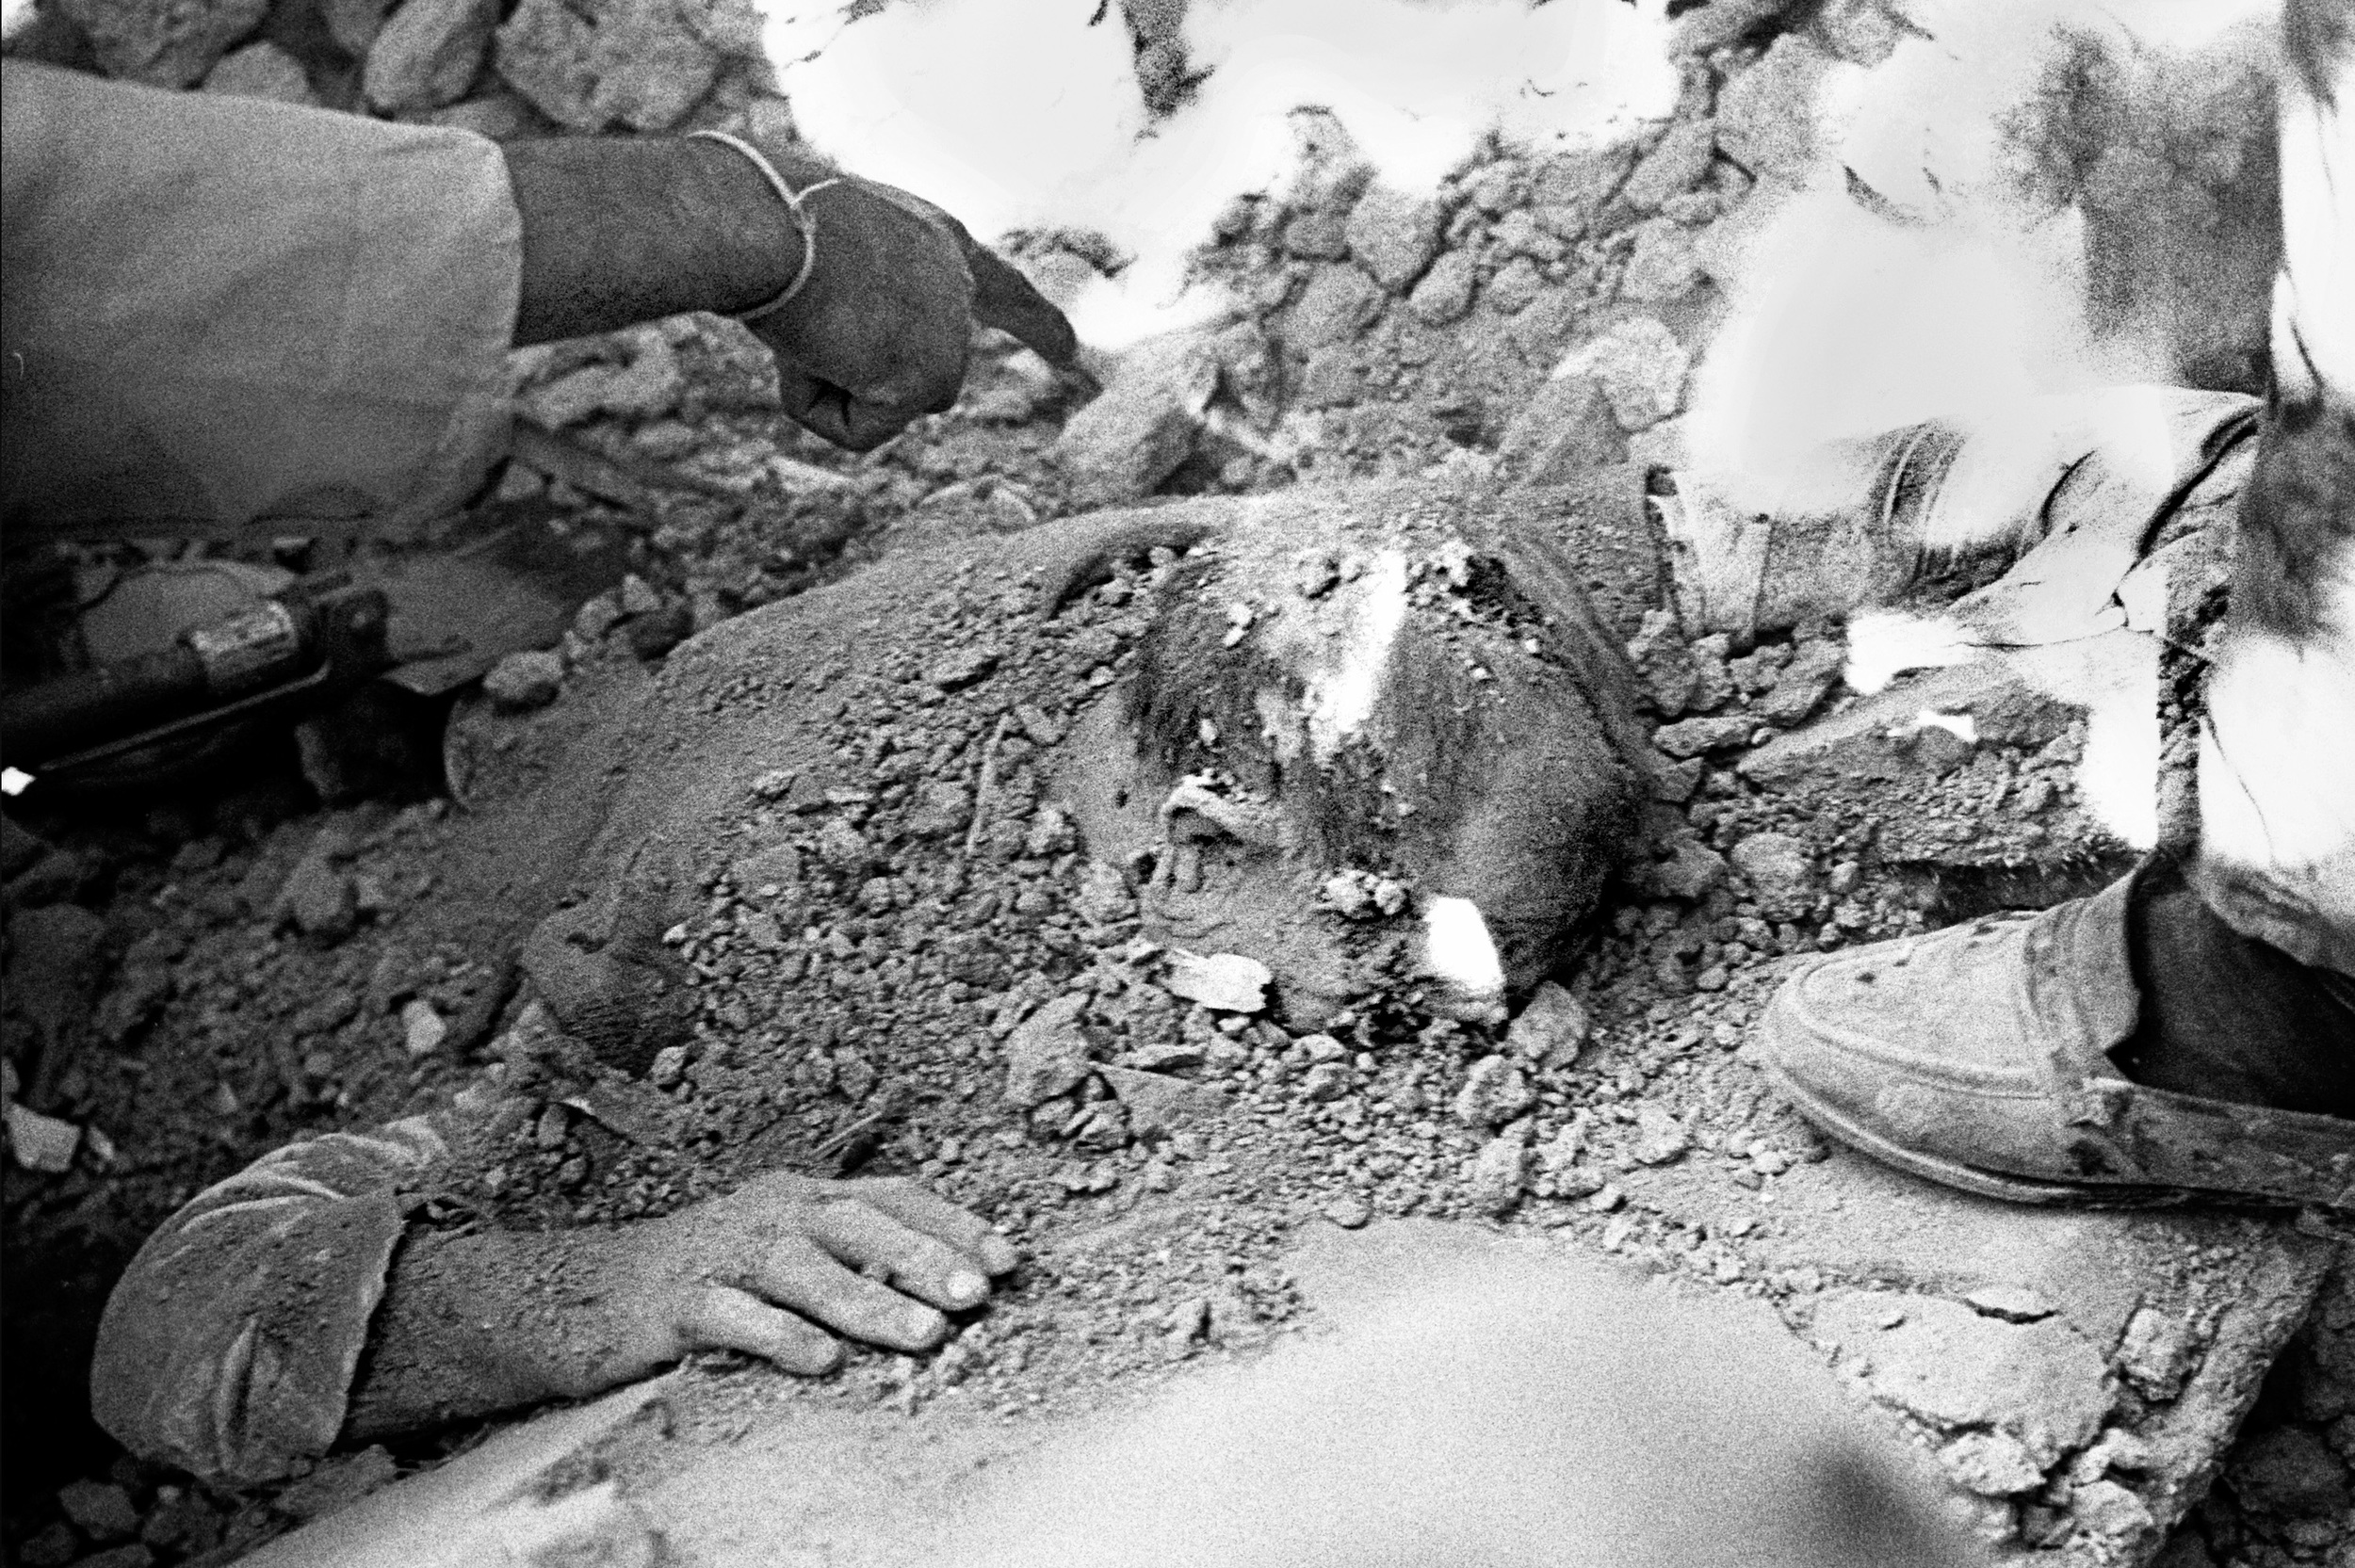 A region with mostly mud brick houses, dozens of villages were completely destroyed killing hundreds and devastating the lives of thousands.